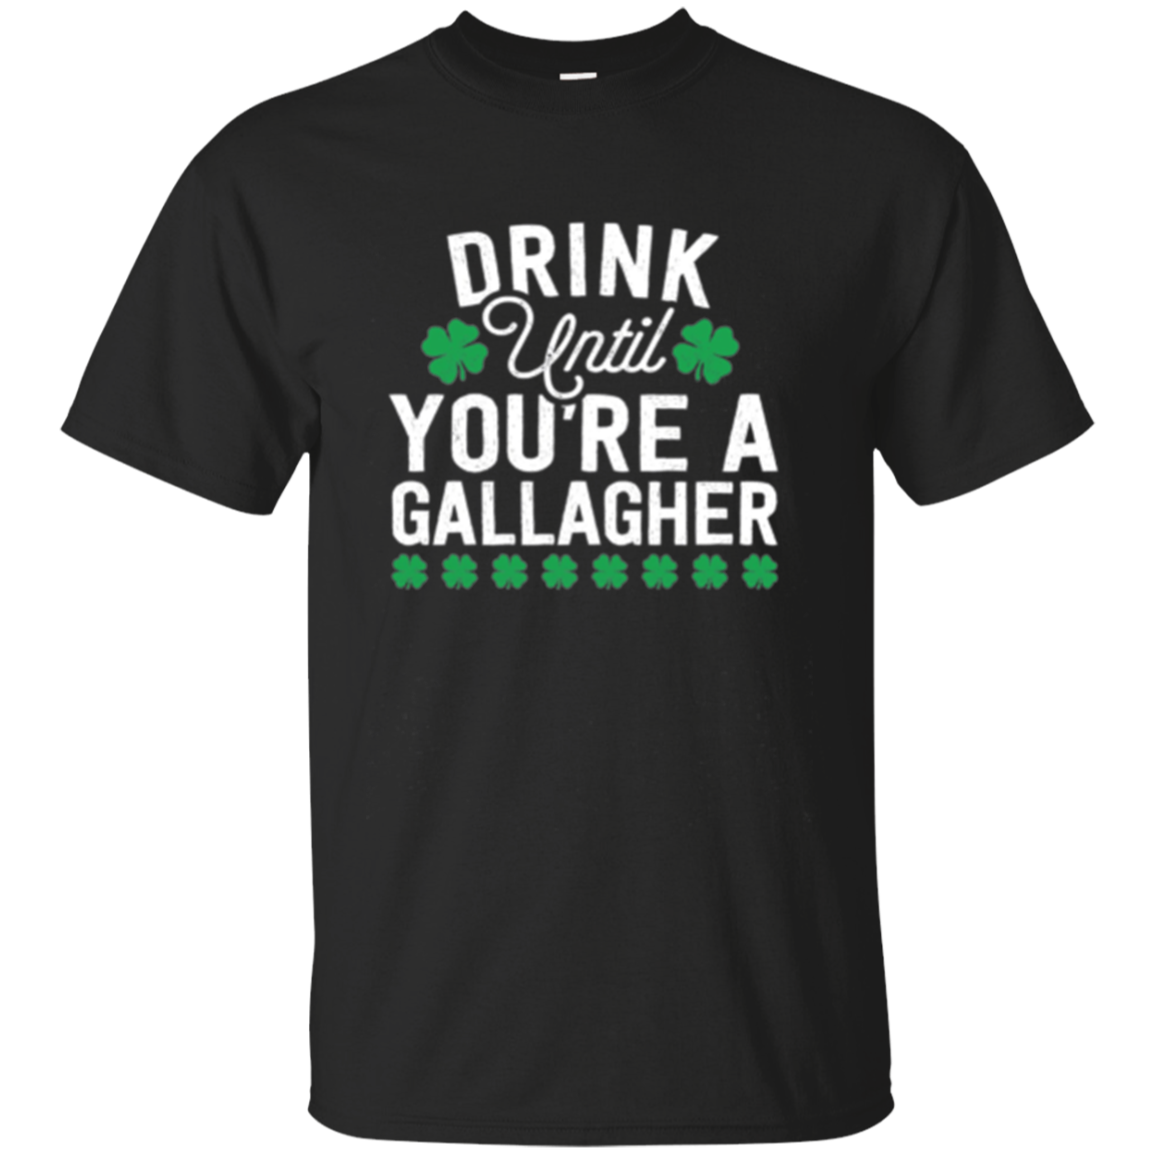 Drink Until You're a Gallagher - Funny Long Sleeve Tshirt